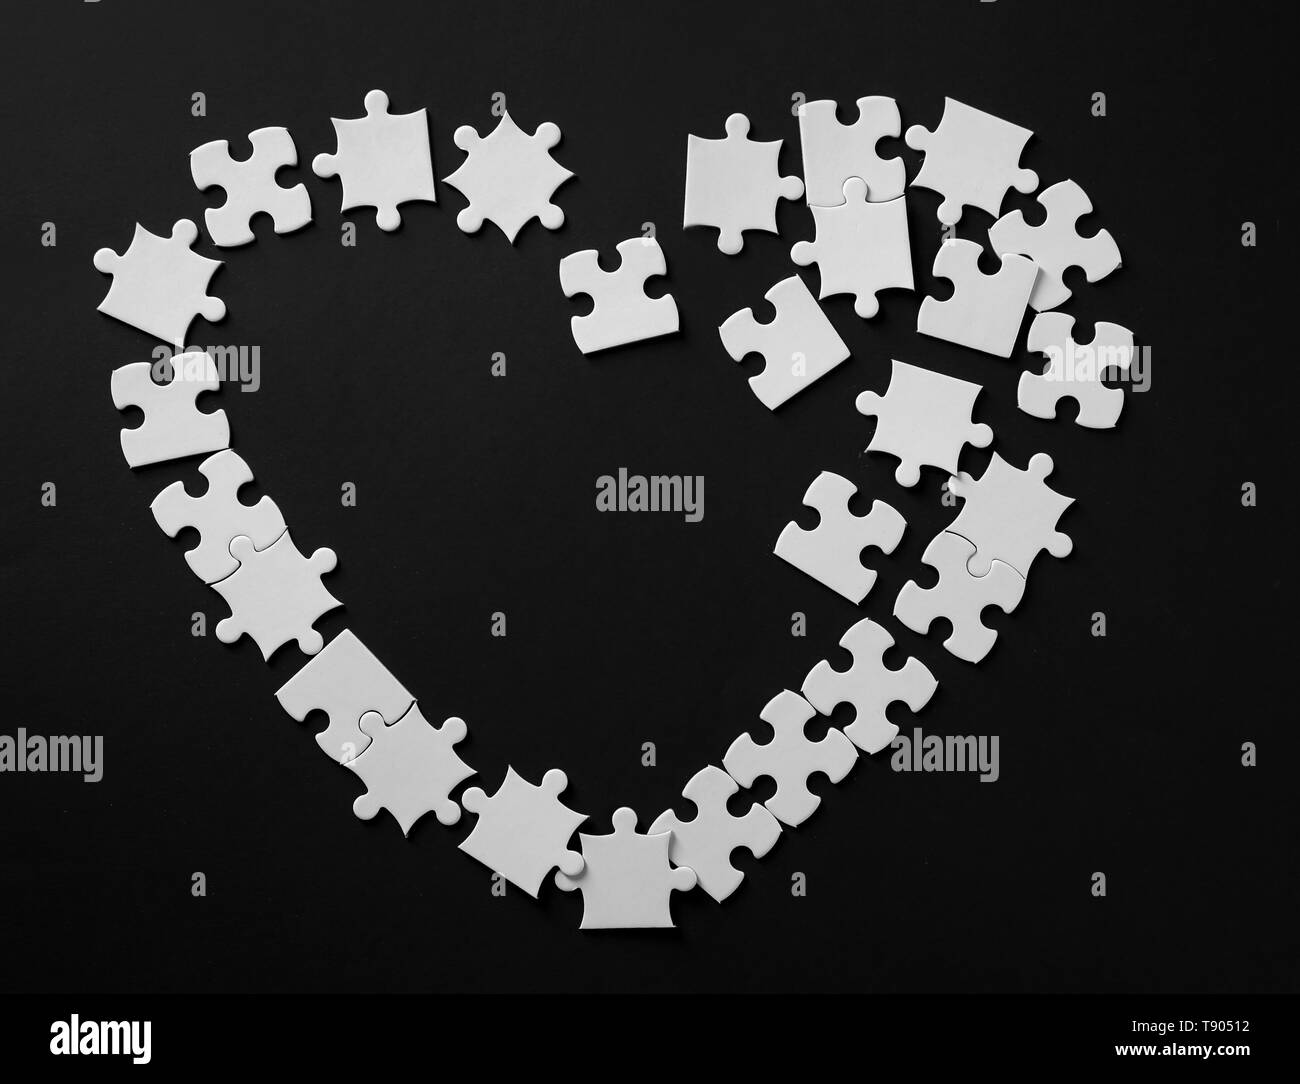 Heart made of jigsaw puzzle pieces on dark background - Stock Image